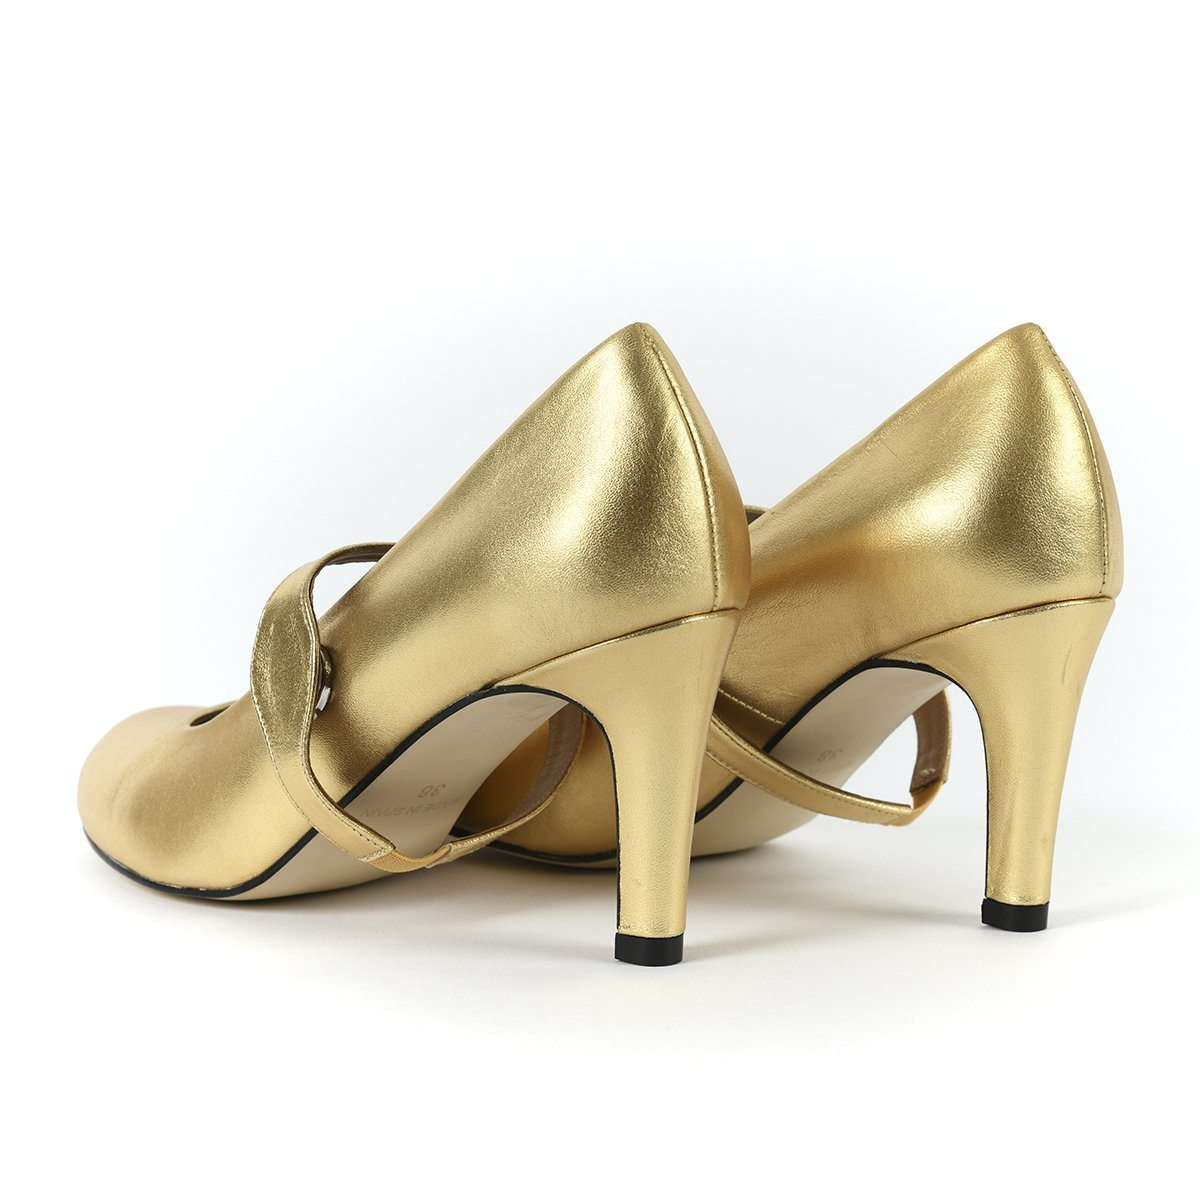 Take My Lead - 18 Hour Heels - Metallic Gold - Shoes by Shaherazad